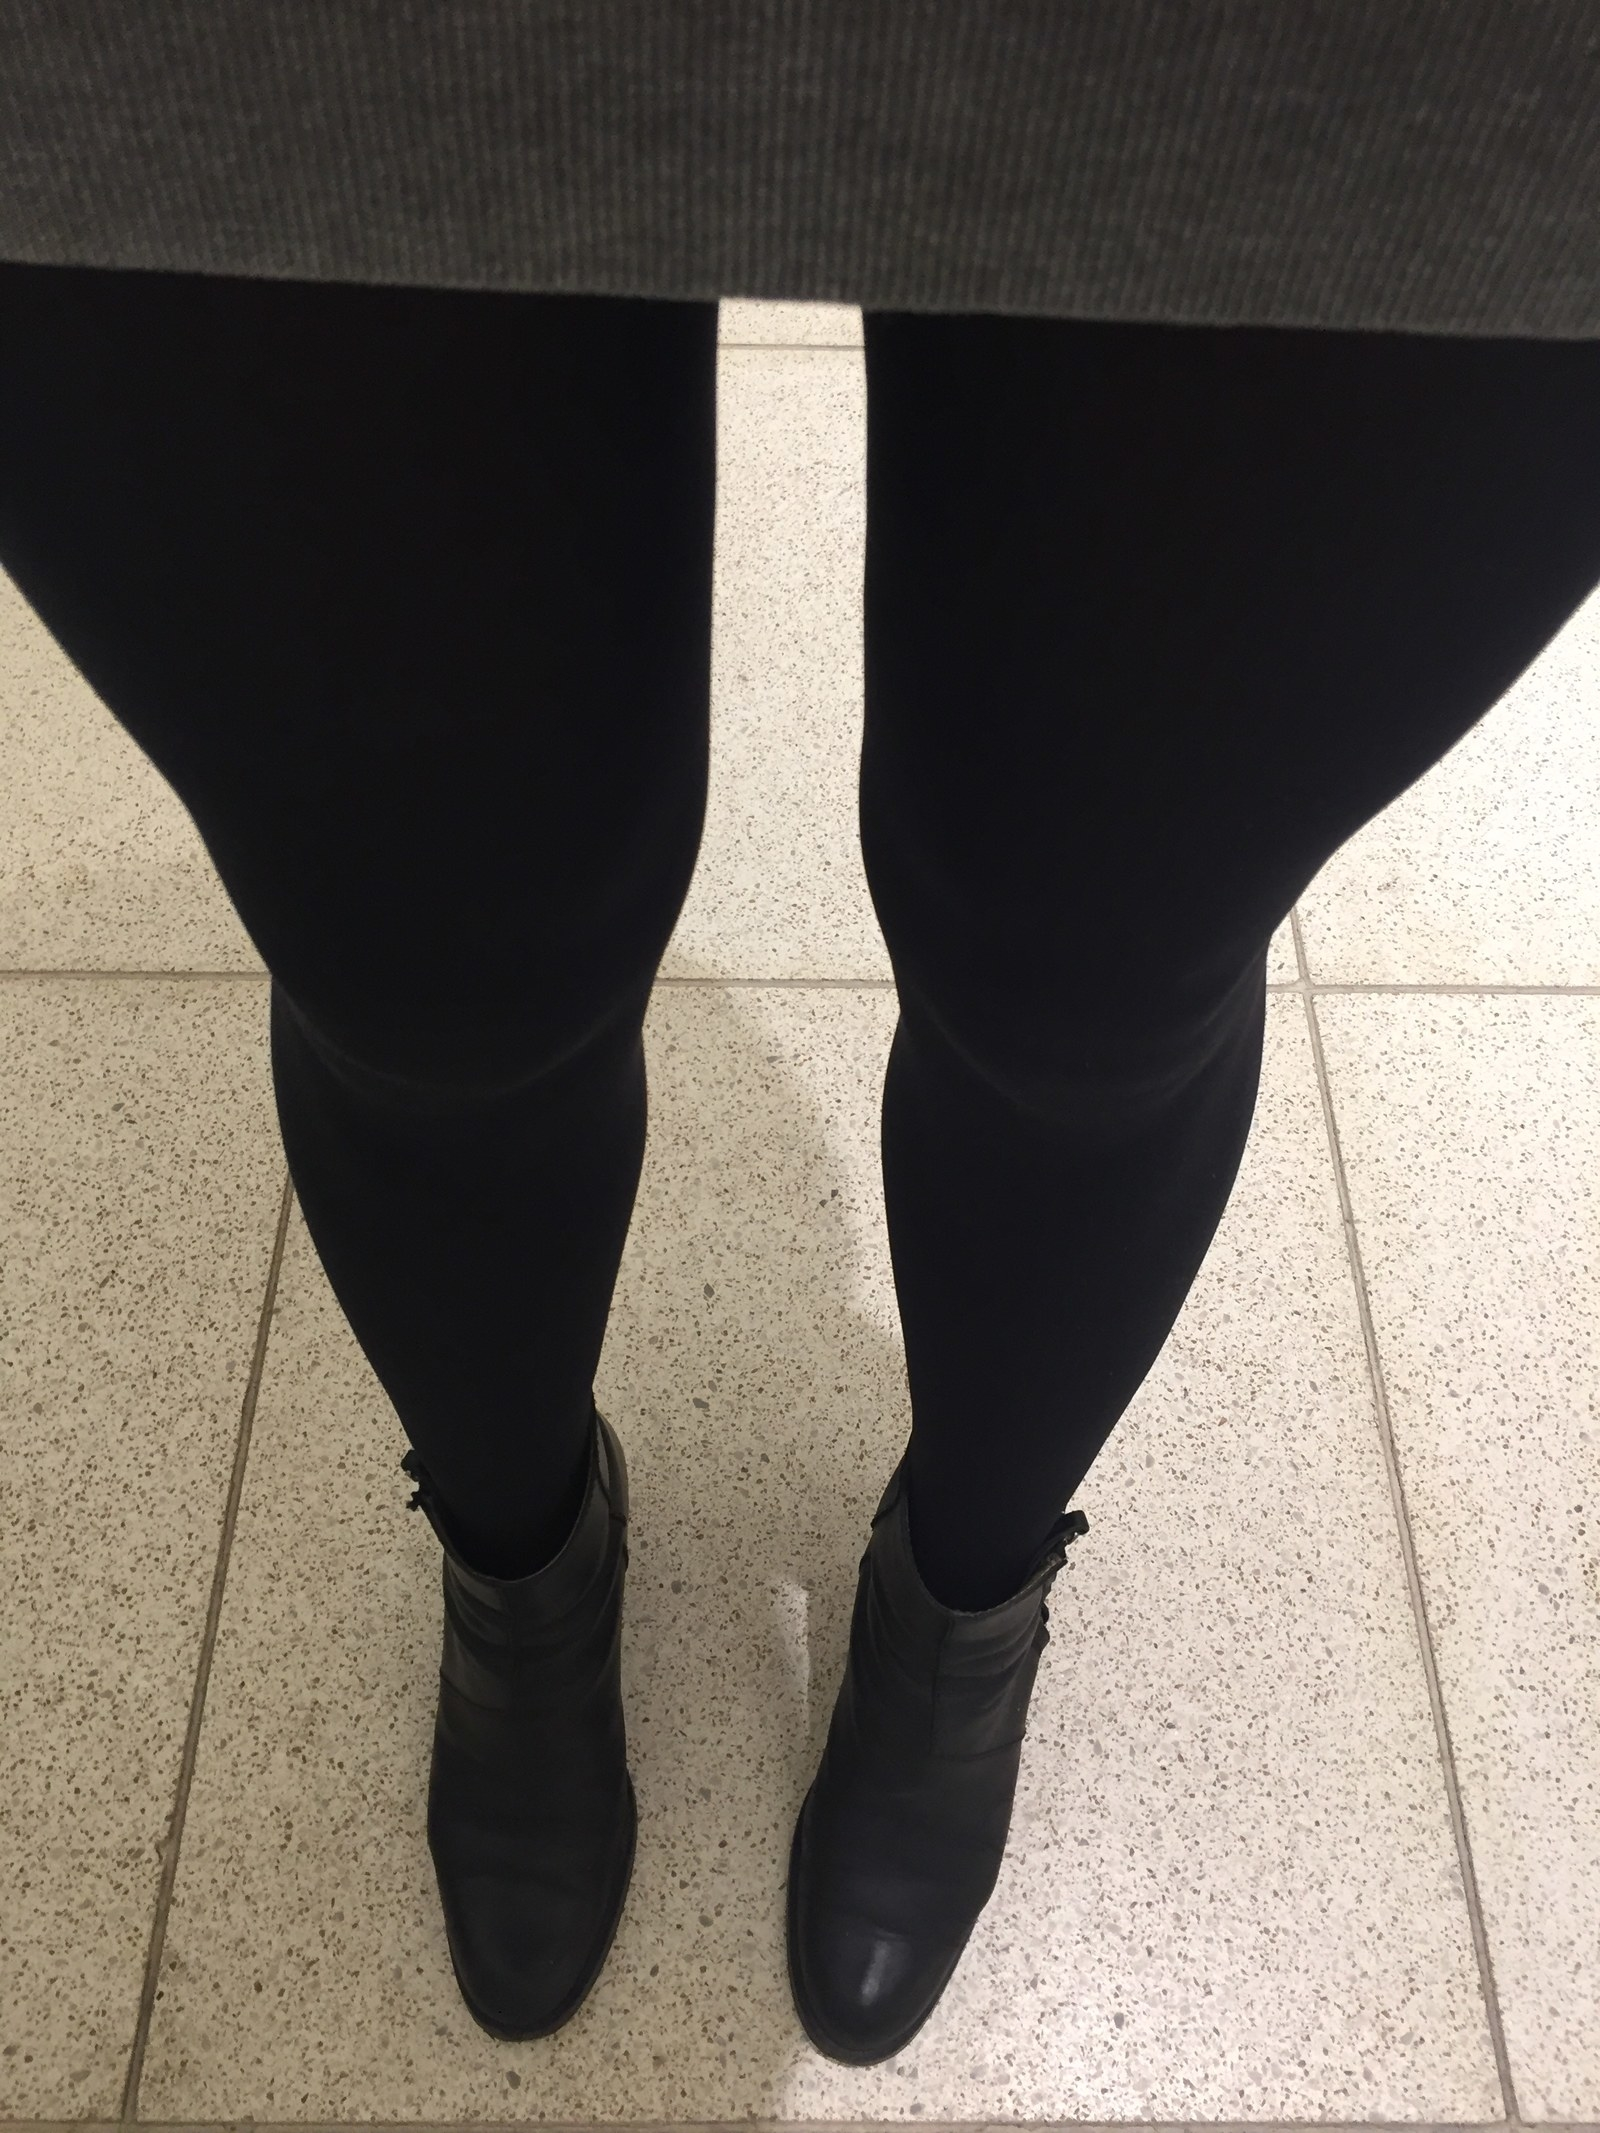 ed94bdeb753be These Tights Are Still Perfect After Nine Years Of Wear